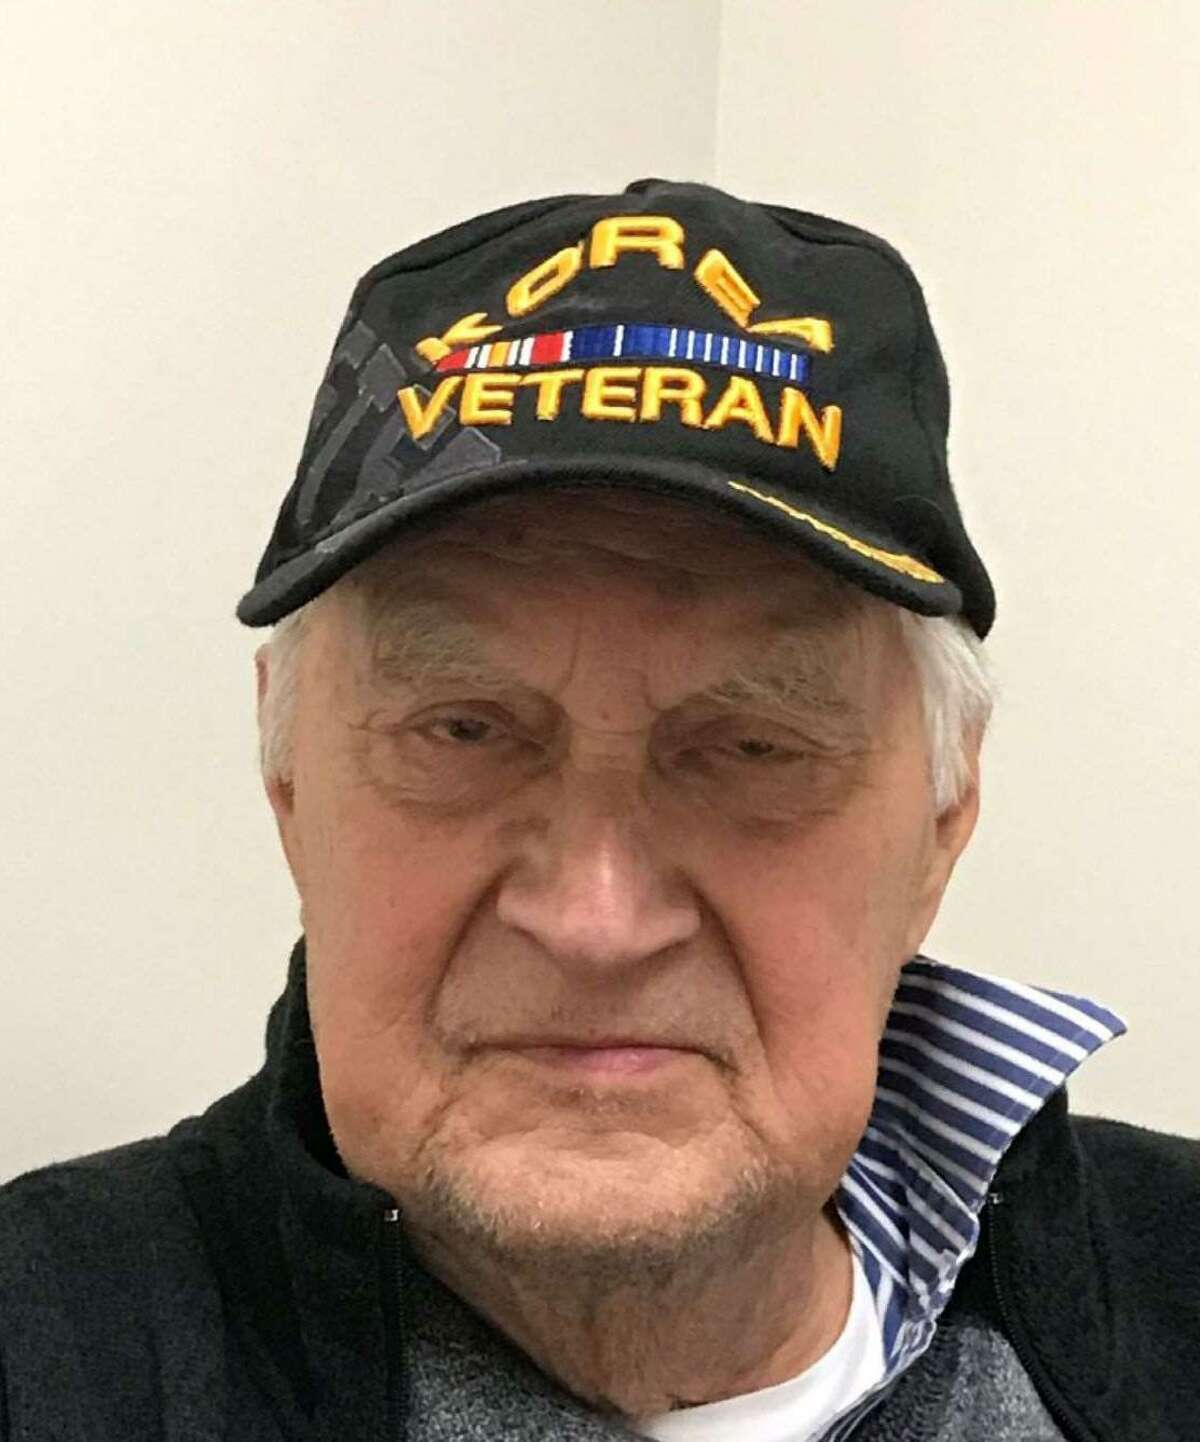 Frank C. Rogers,86, of Orangewas arrested Nov. 11, 2019 and charged with stealing a parking sign in Orange.